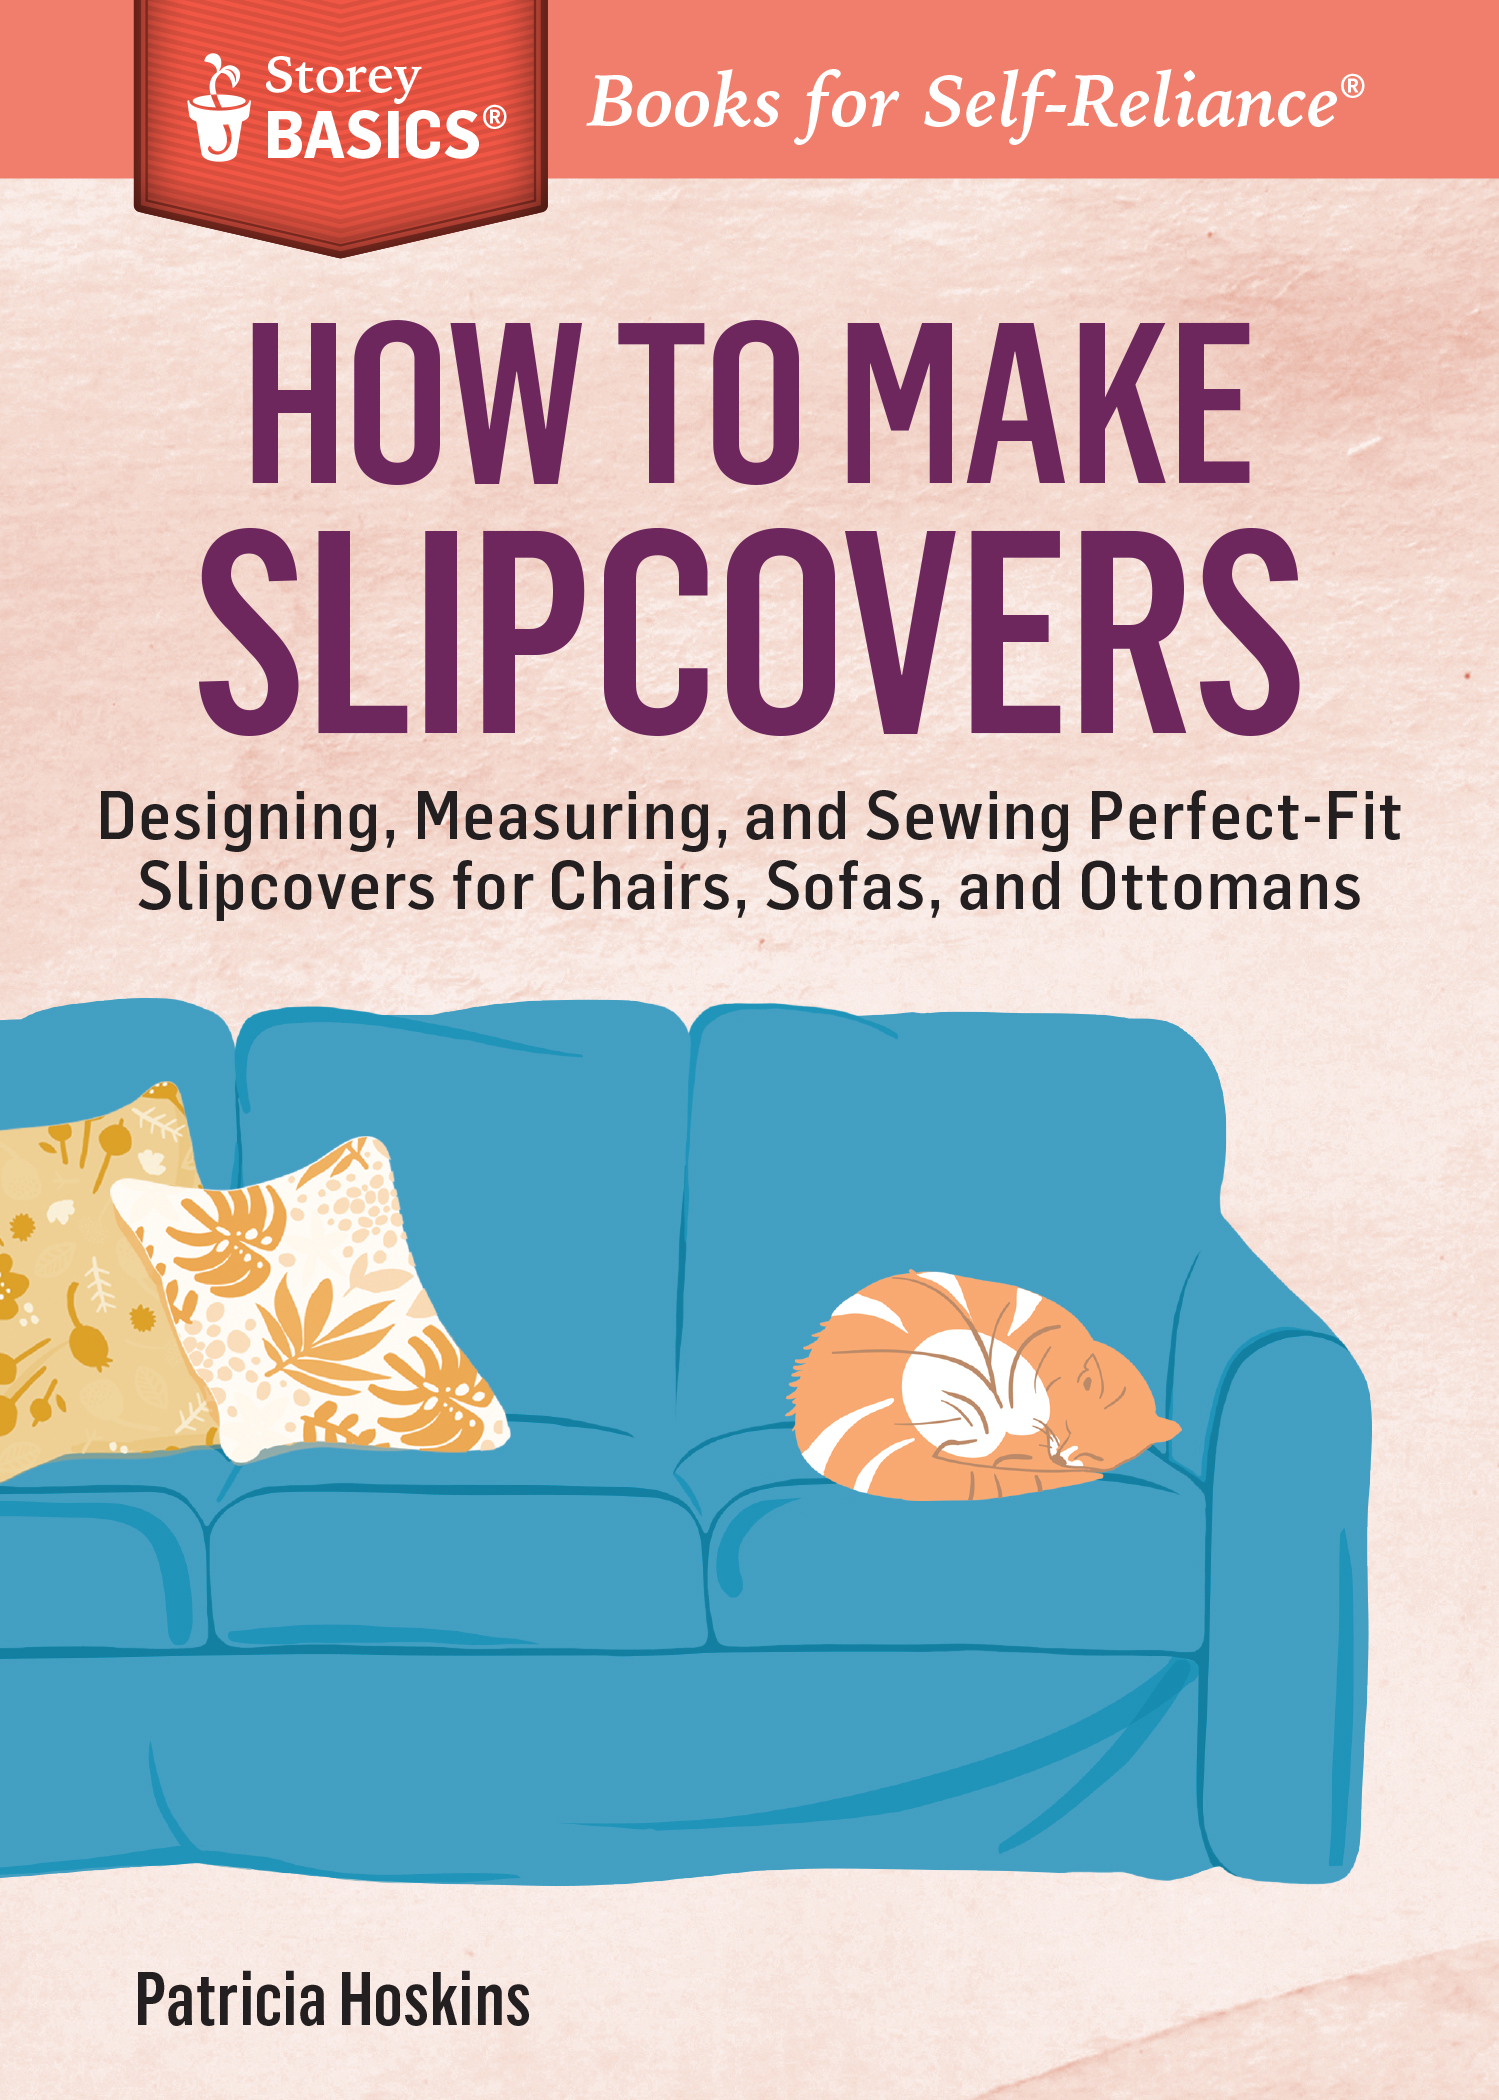 How to Make Slipcovers Designing, Measuring, and Sewing Perfect-Fit Slipcovers for Chairs, Sofas, and Ottomans. A Storey BASICS® Title - Patricia Hoskins